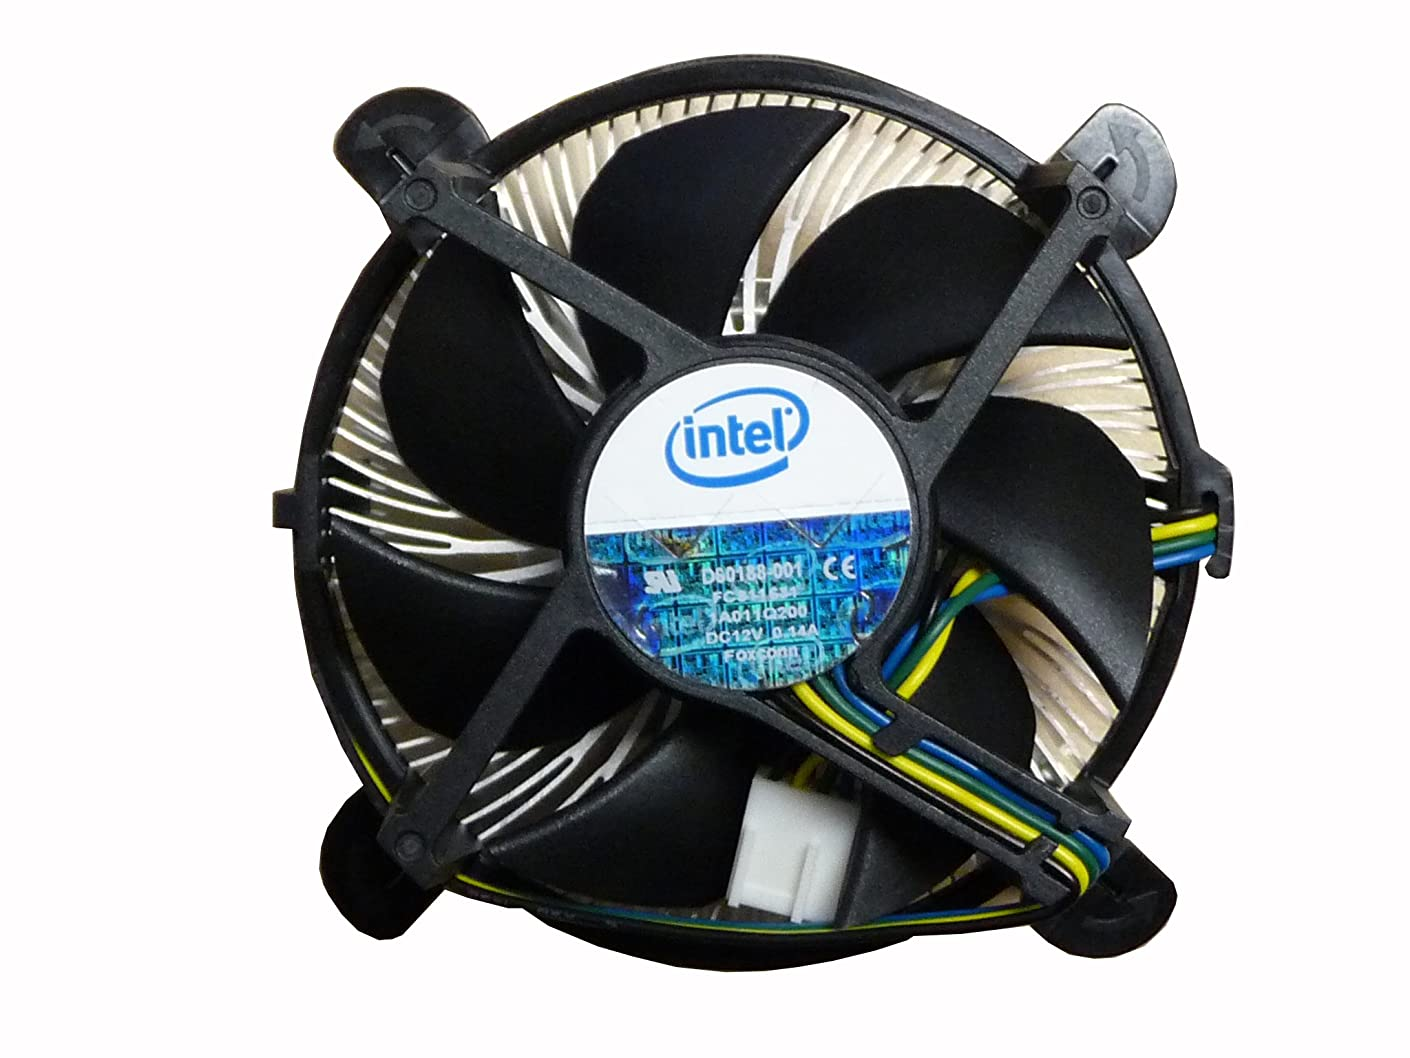 Intel D60188-001 Sock?et 775 Copper Core Heatsink & Fan